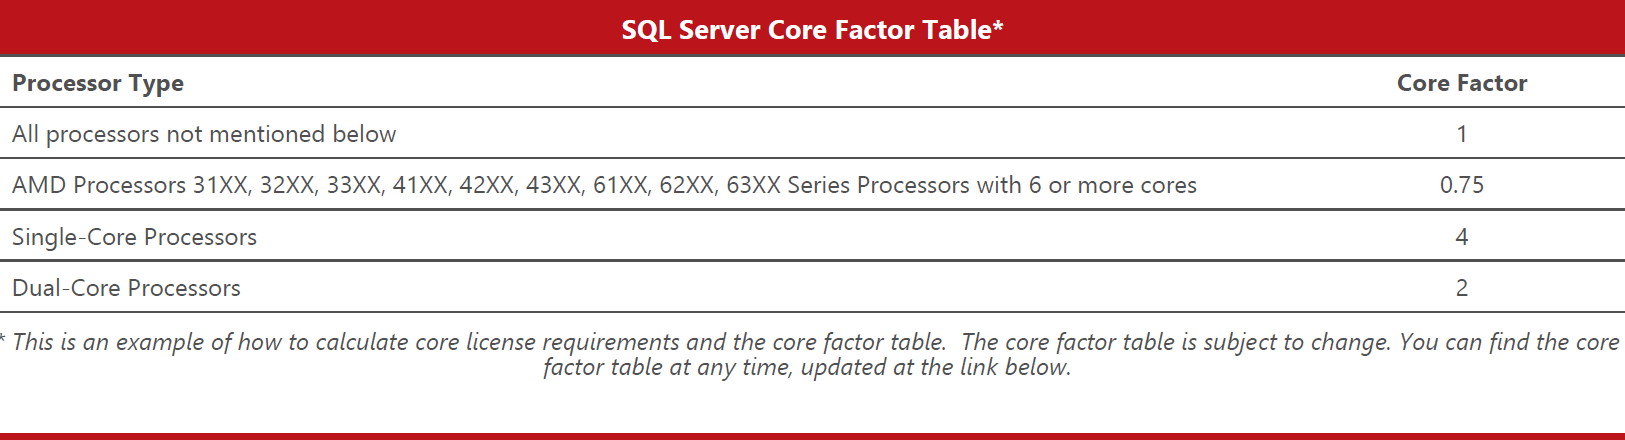 SQL_Server_2014_Core_Factor_table